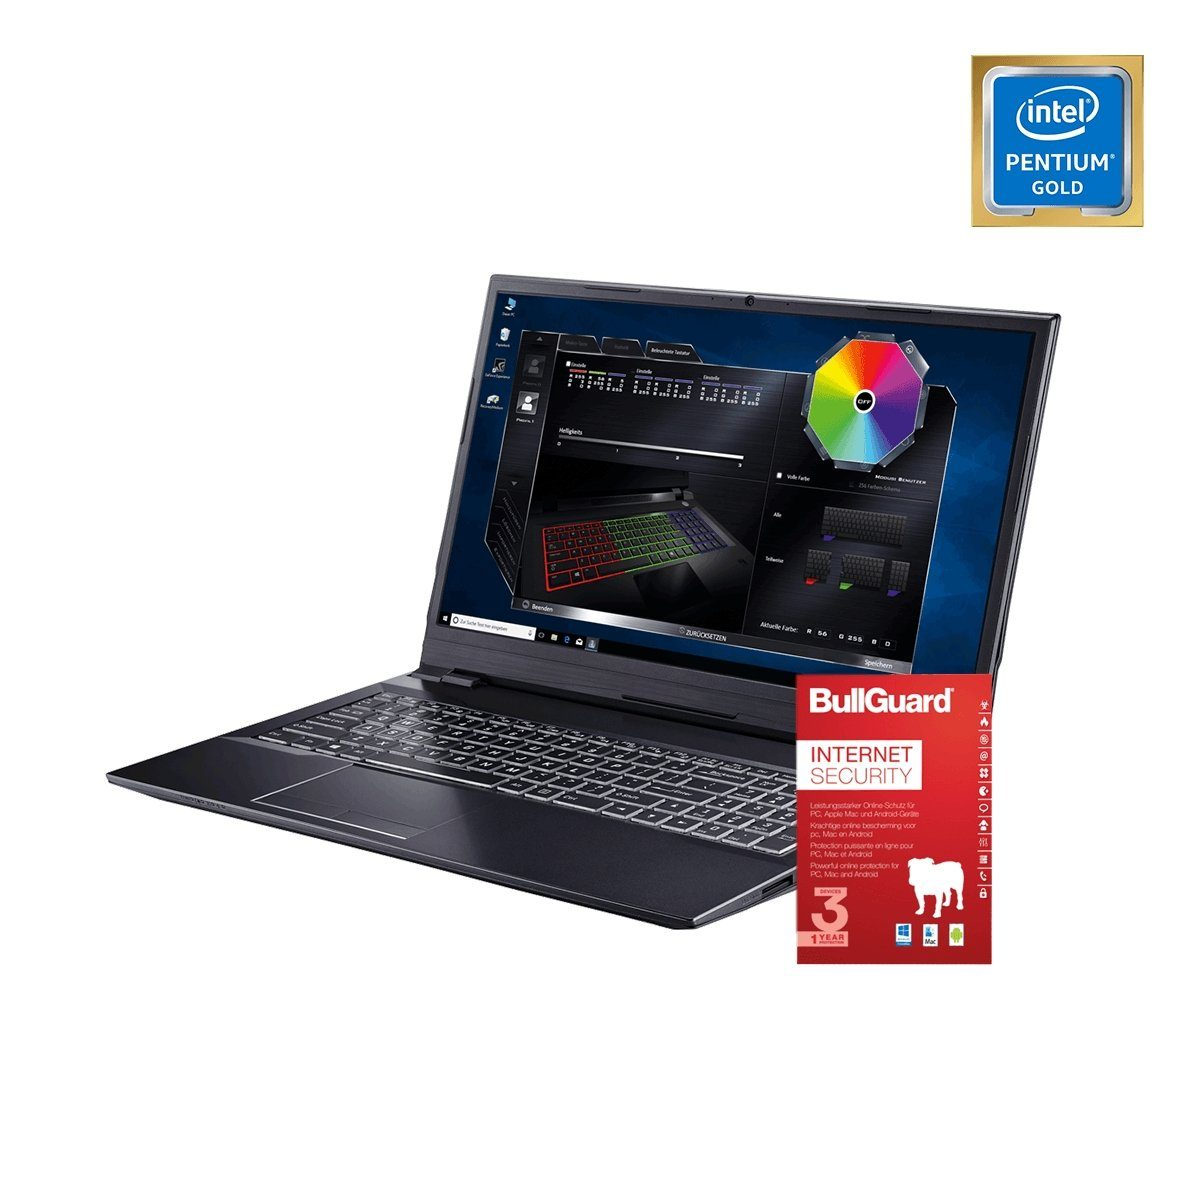 ONE GAMING Notebook, Pentium Gold G5500, GeForce GTX 1050 Ti, 16GB »NB 44976«